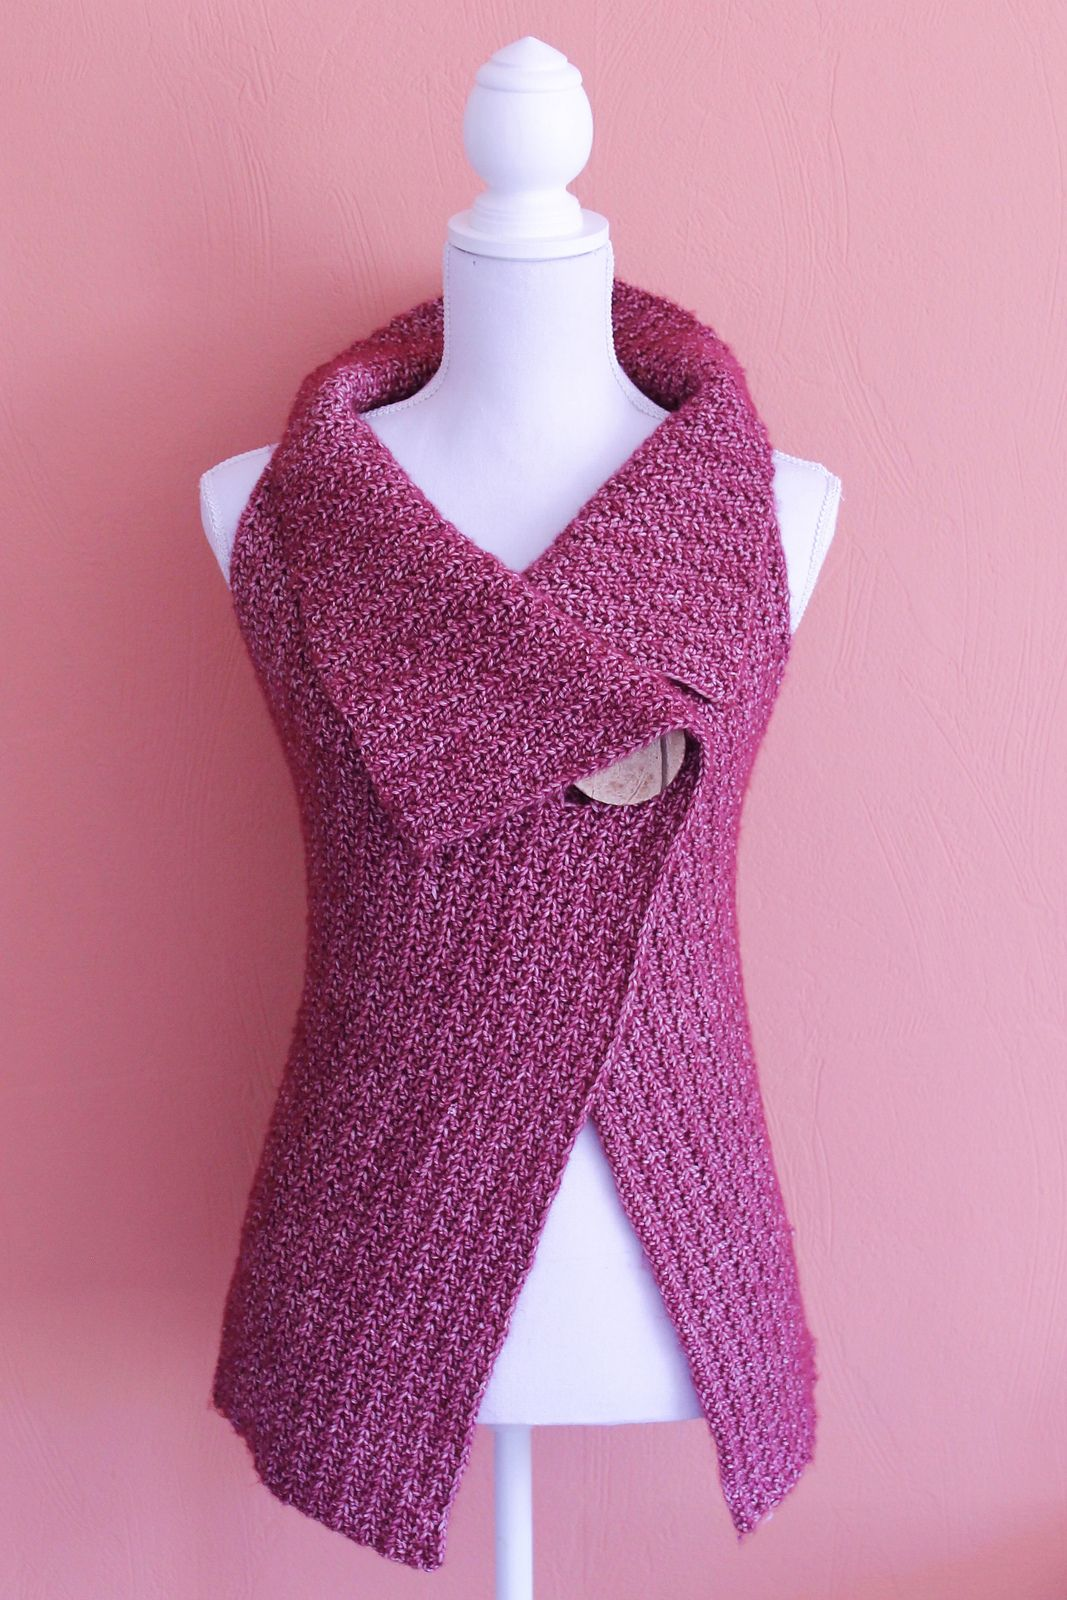 Peek-a-Boo Button Wrap pattern by Nerissa Muijs | Pinterest | Wrap ...